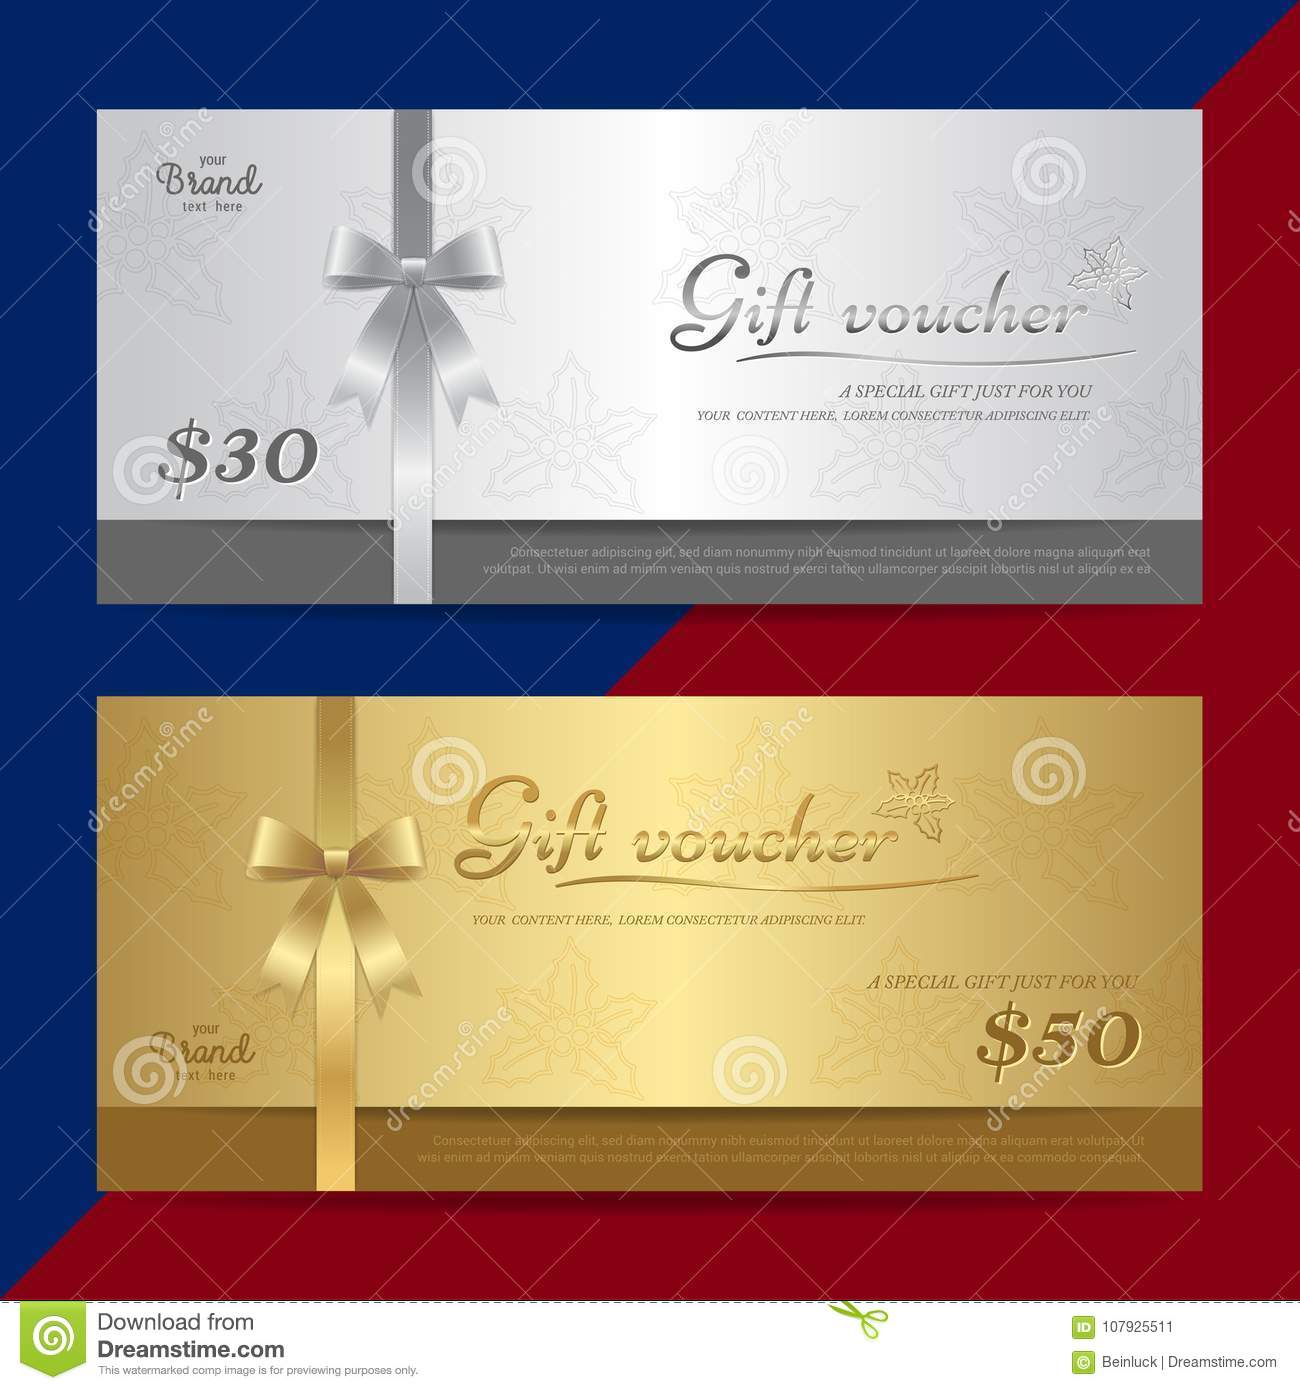 gift certificate voucher gift card or cash coupon template in